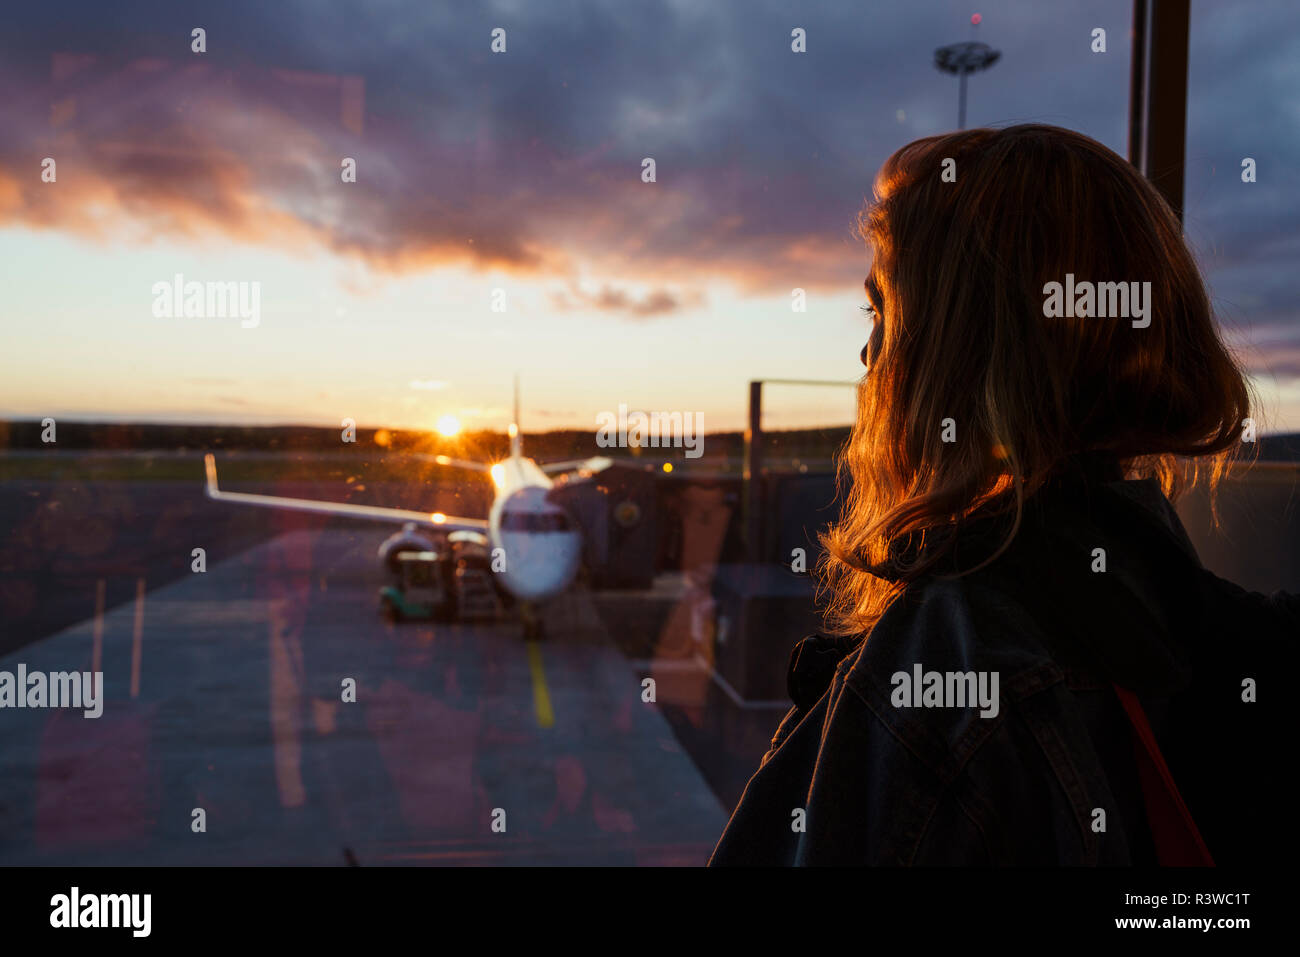 Young woman looking through window on plane at the airport at sunset - Stock Image